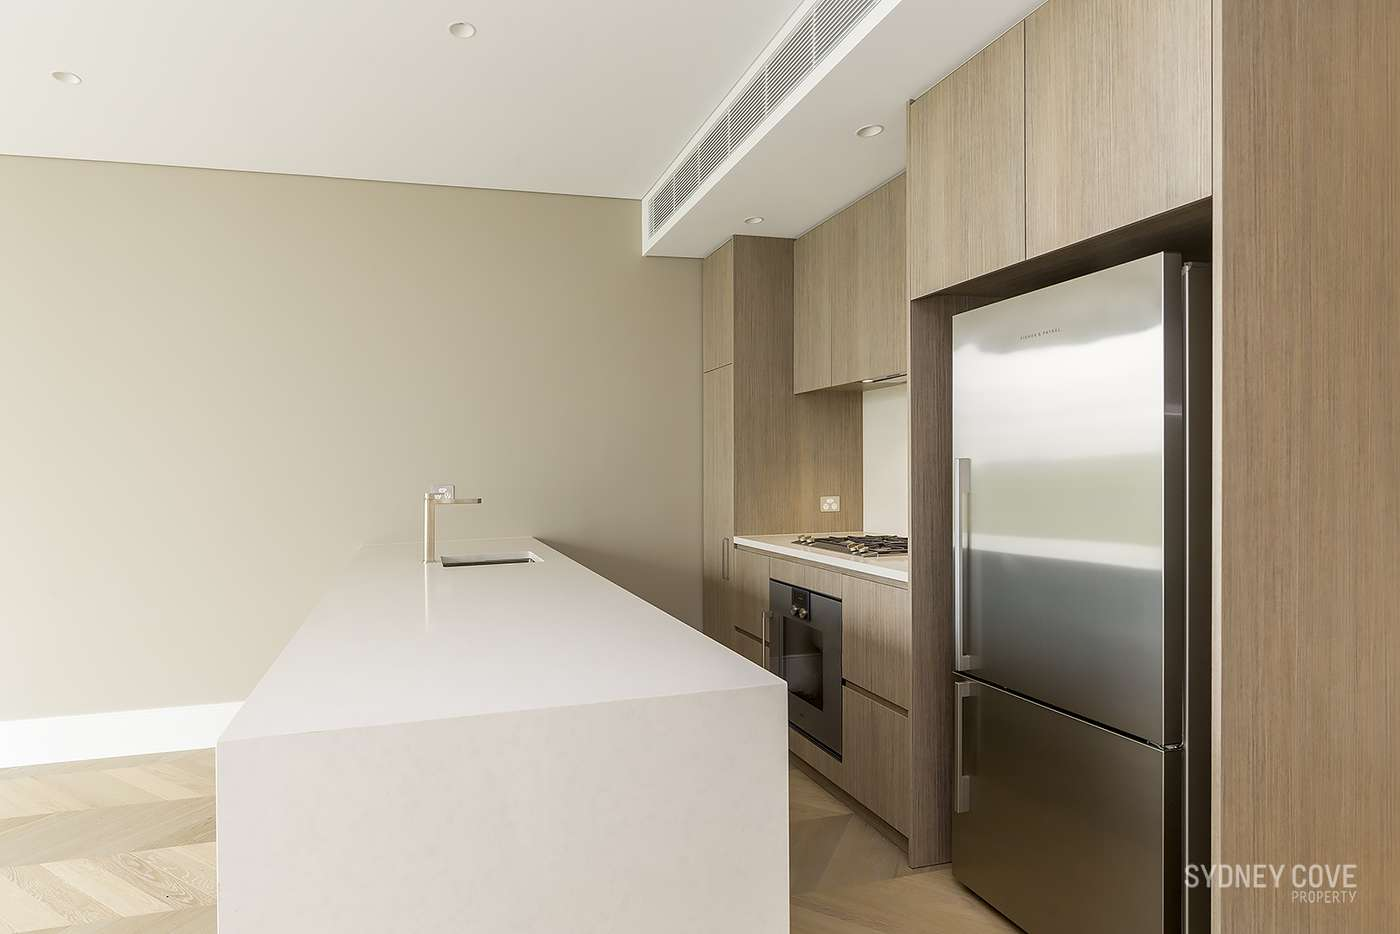 Seventh view of Homely apartment listing, 130 Elizabeth St, Sydney NSW 2000